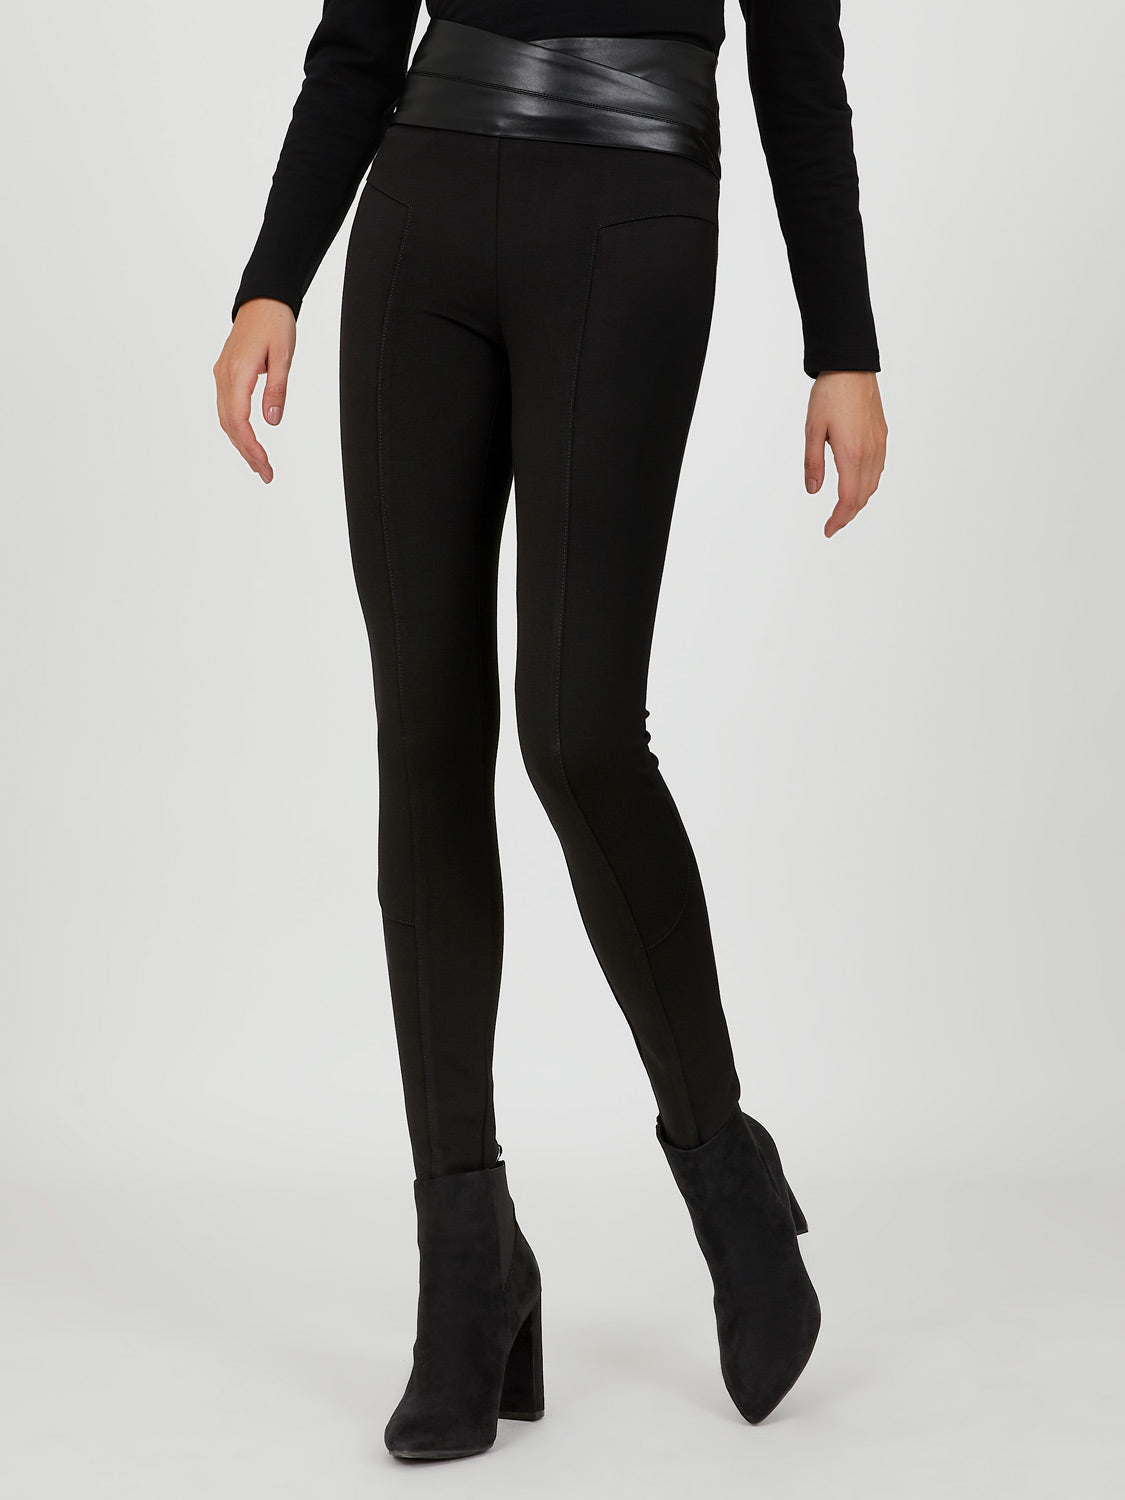 Skinny Faux Leather Pant